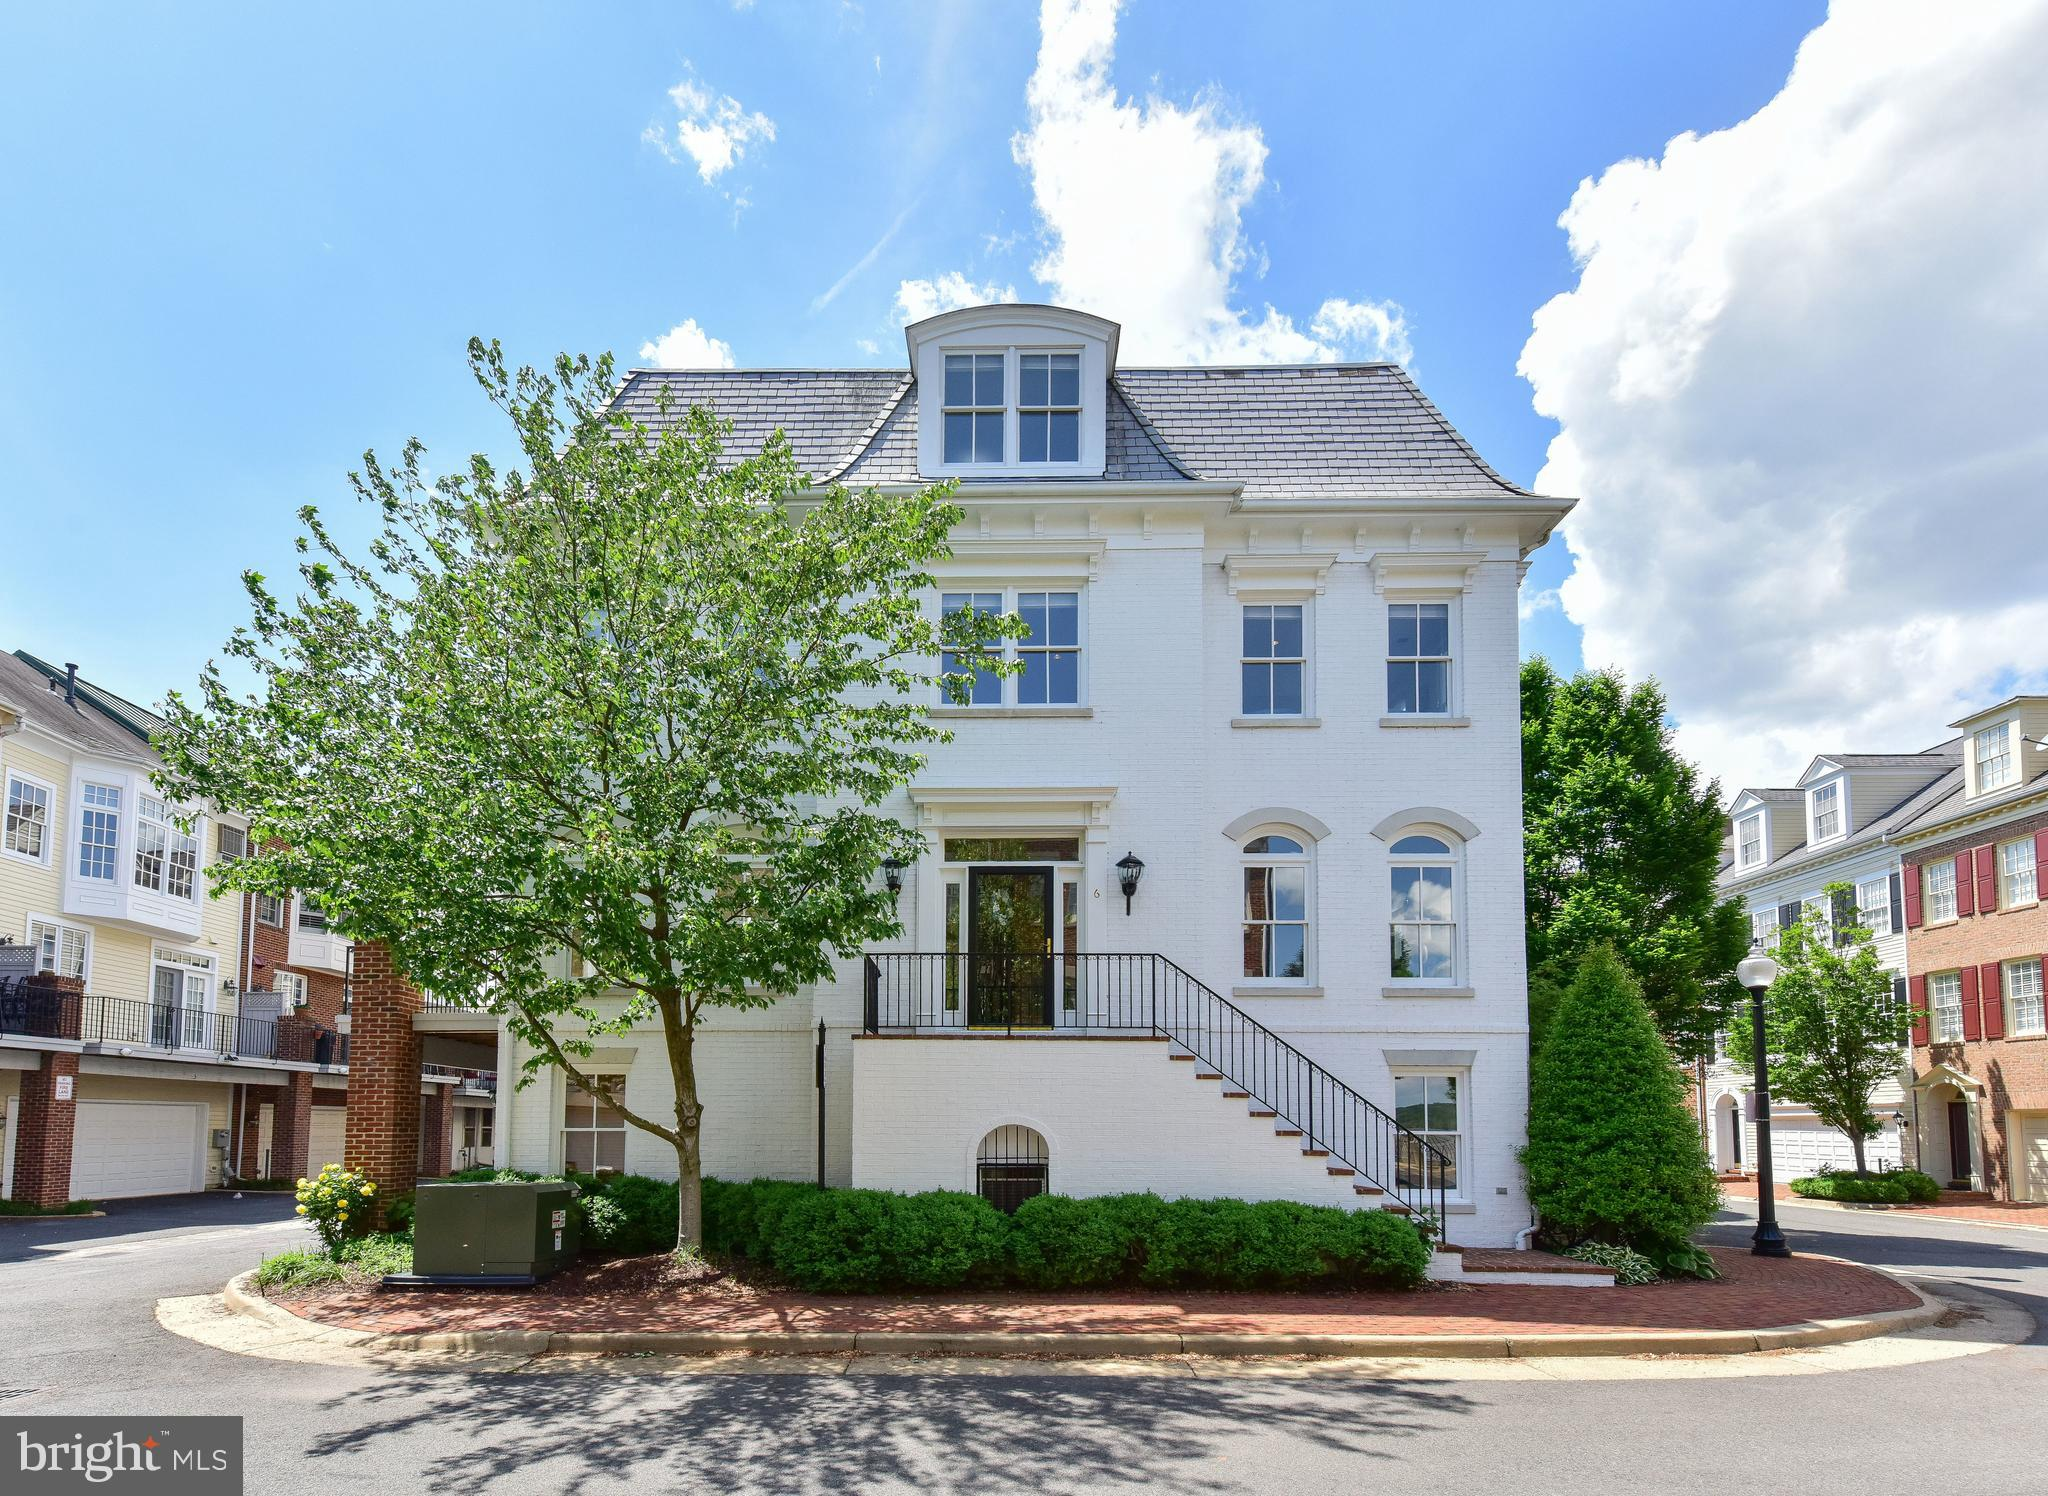 Welcome to today's hallmark of luxury living in this beautiful end-unit townhome with enchanting Potomac River views on two sides!  Just steps to the scenic water front, this east facing Royal model with abundant natural light at Ford's Landing offers a premium vista in a serene upscale waterfront neighborhood in the picturesque southeast quadrant of Old Town Alexandria as well as the sought after Lyles Crouch school district.  Elegant interior showcases delightful river views on all levels and many attractive features throughout including a large kitchen with breakfast area opening to a cheerful deck with sunny southern exposure, a private and expansive whole level master suite and a spacious two-car garage.  Say hello to gorgeous sunrise on the Potomac and take a leisurely walk to the vibrant downtown marina with water taxi services to Georgetown, Wharf in DC, National Harbor and stadiums across the river to watch the Nationals and D.C United play.  Come celebrate your arrival at this pinnacle of an enviable life in Old Town surrounded by green space galore from the historic Windmill Hill/Potomac View Park to Jones Point Park and yet just an easy stroll to King St. destinations including unique boutiques, fun shops, popular eateries, high end hotels and restaurants.  Cheers to your fabulous new home by the river at 6 Keiths Lane!